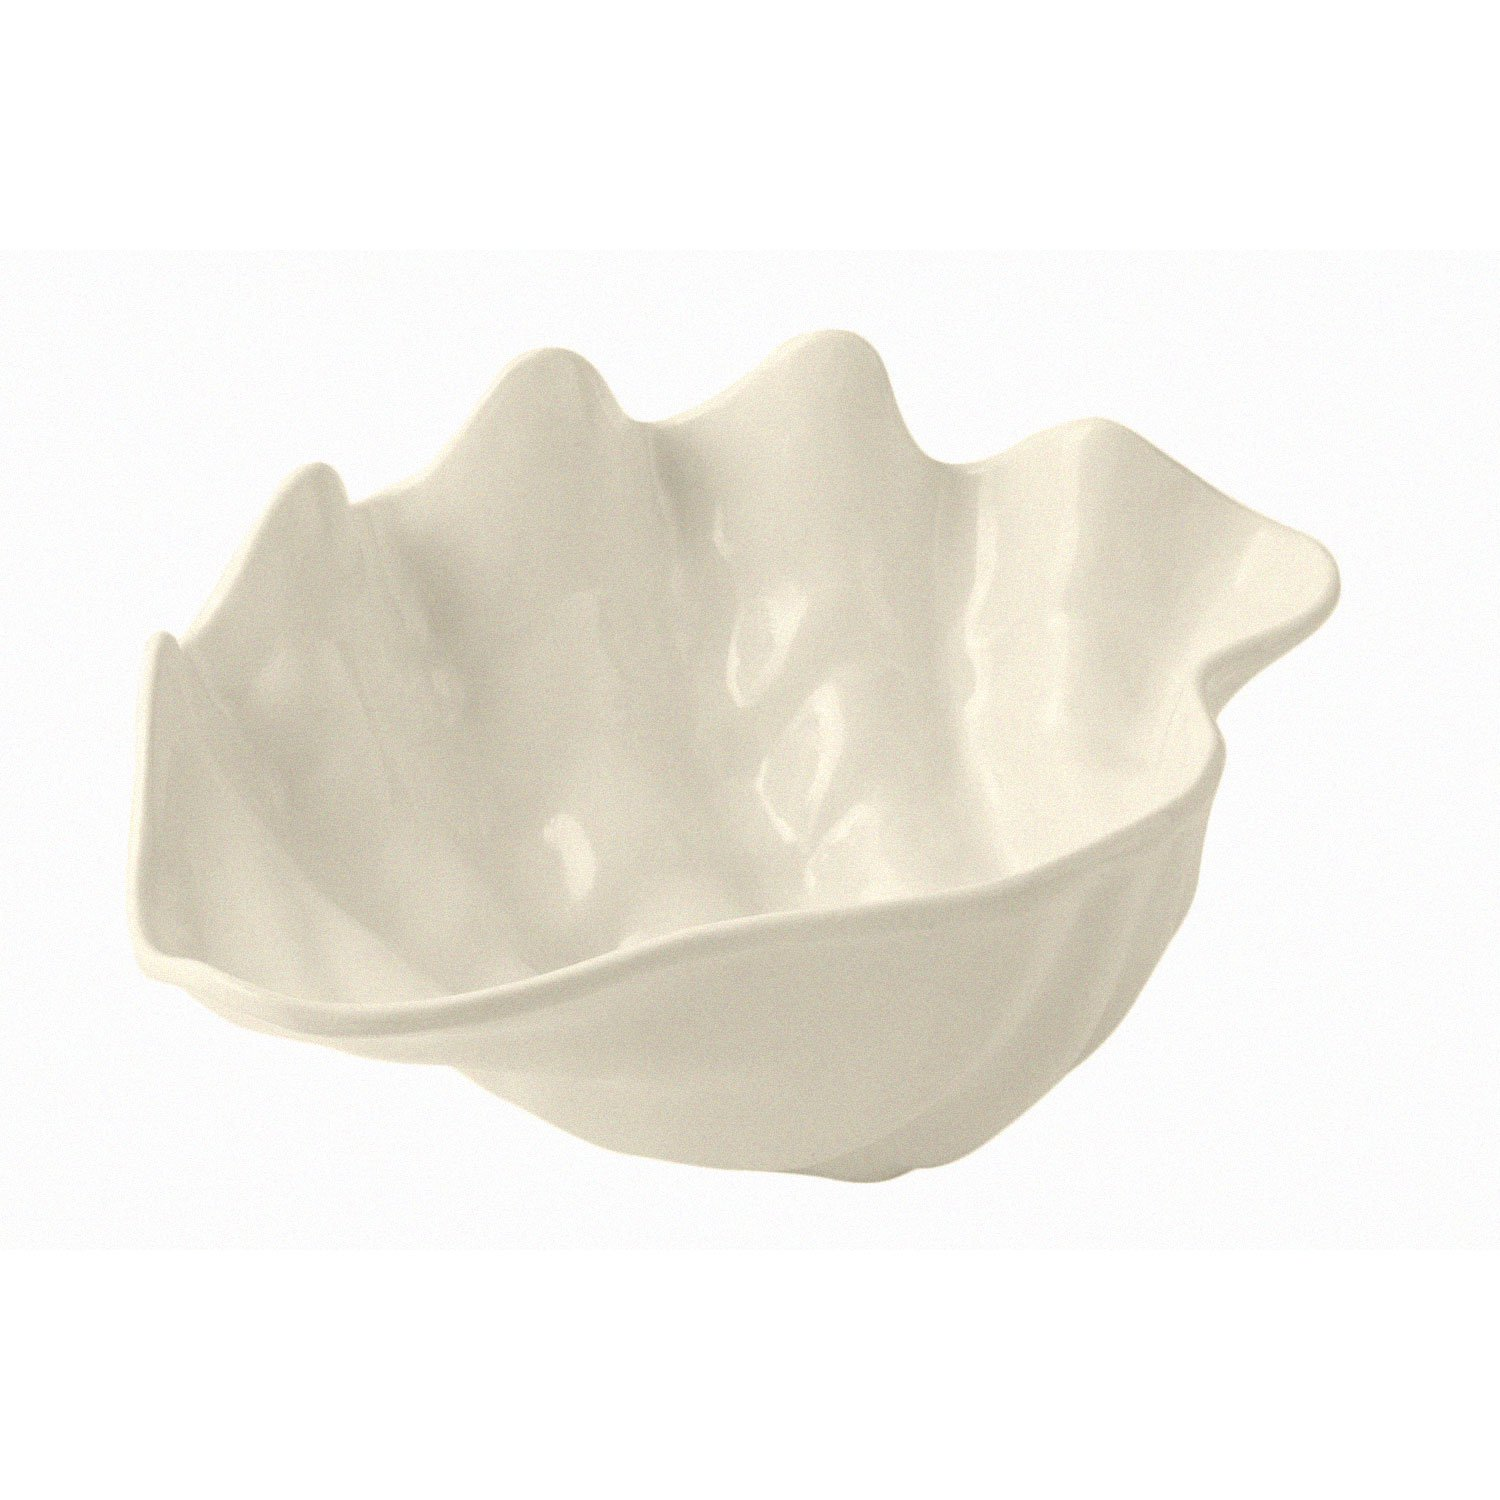 4 qt 11 1/4 x 18 1/2 inch Conch Shell Sandstone Ivory Speckled